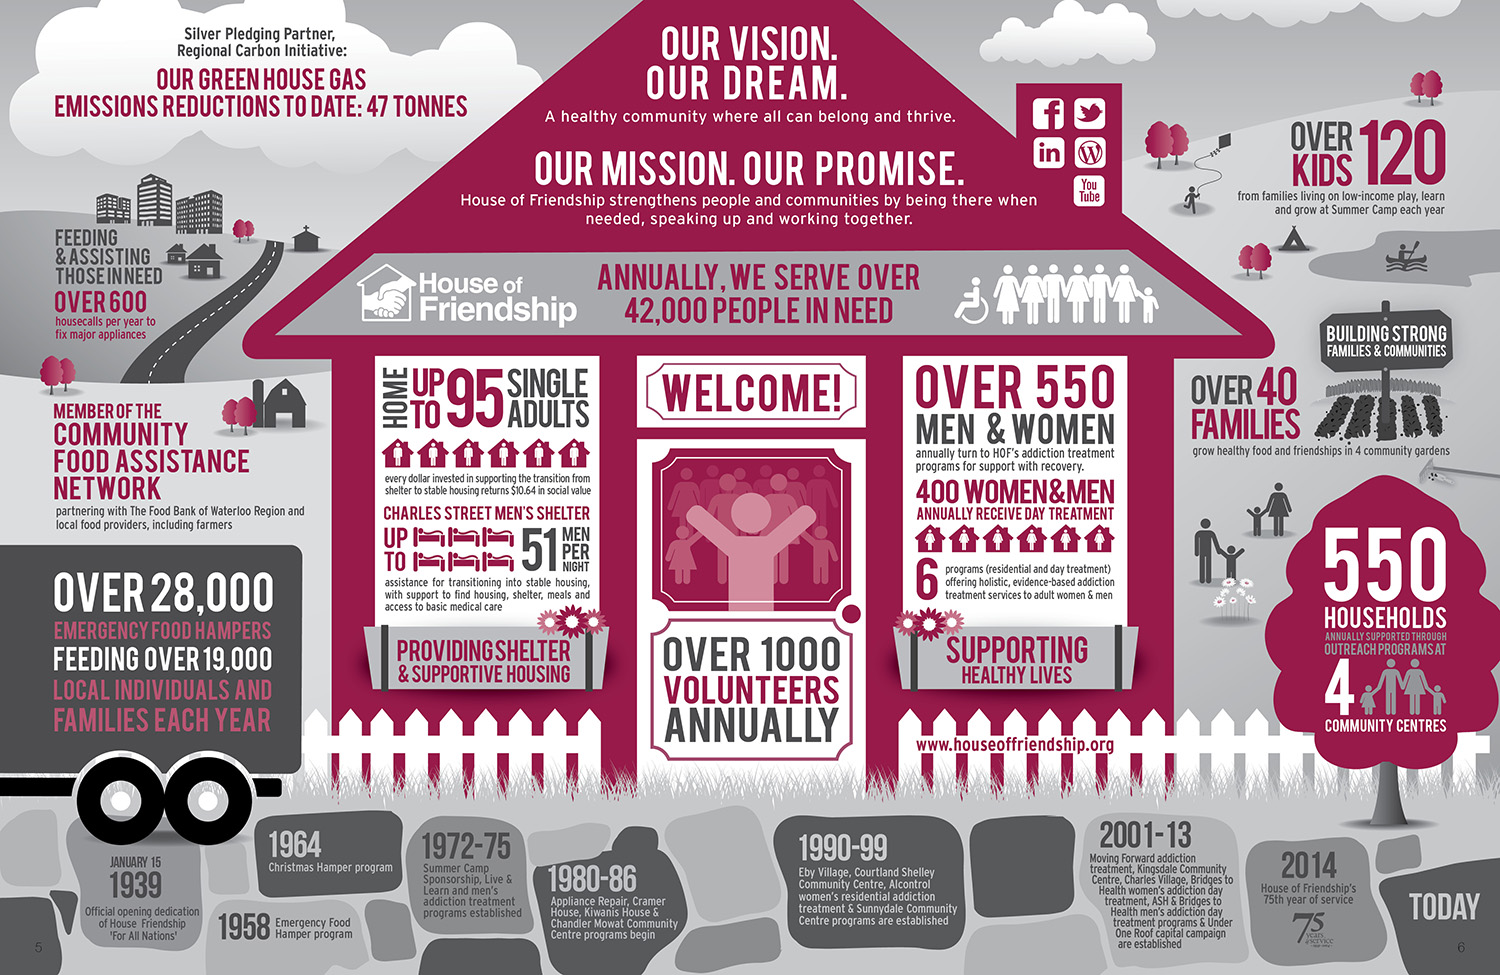 Our Vision, Our Dream